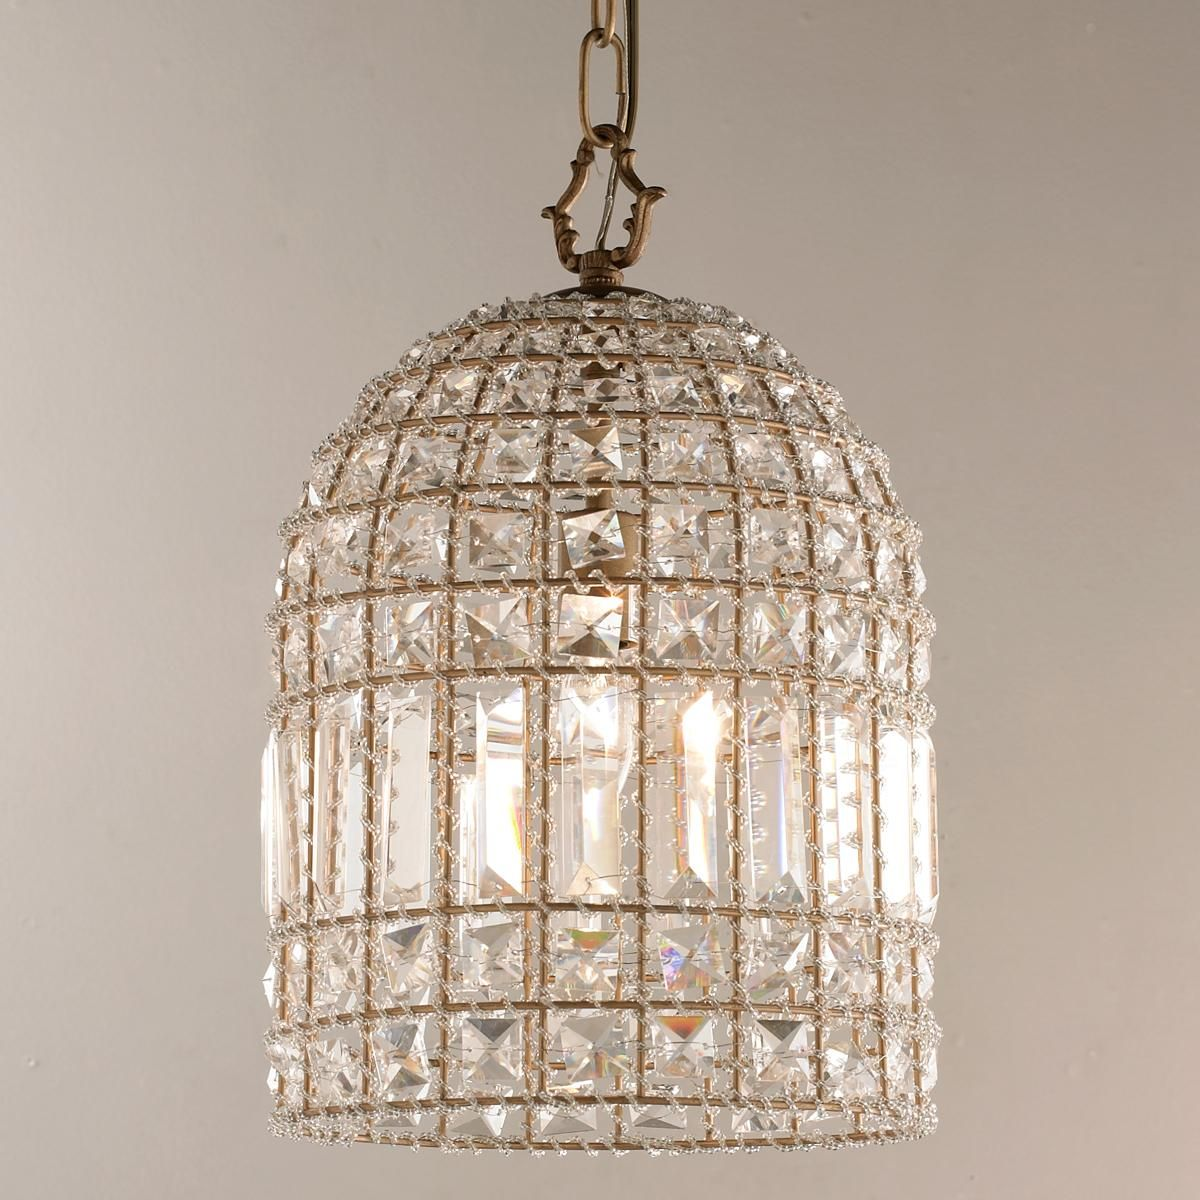 cage light pendant by crystal dome pendant large accent lighting pinterest lights